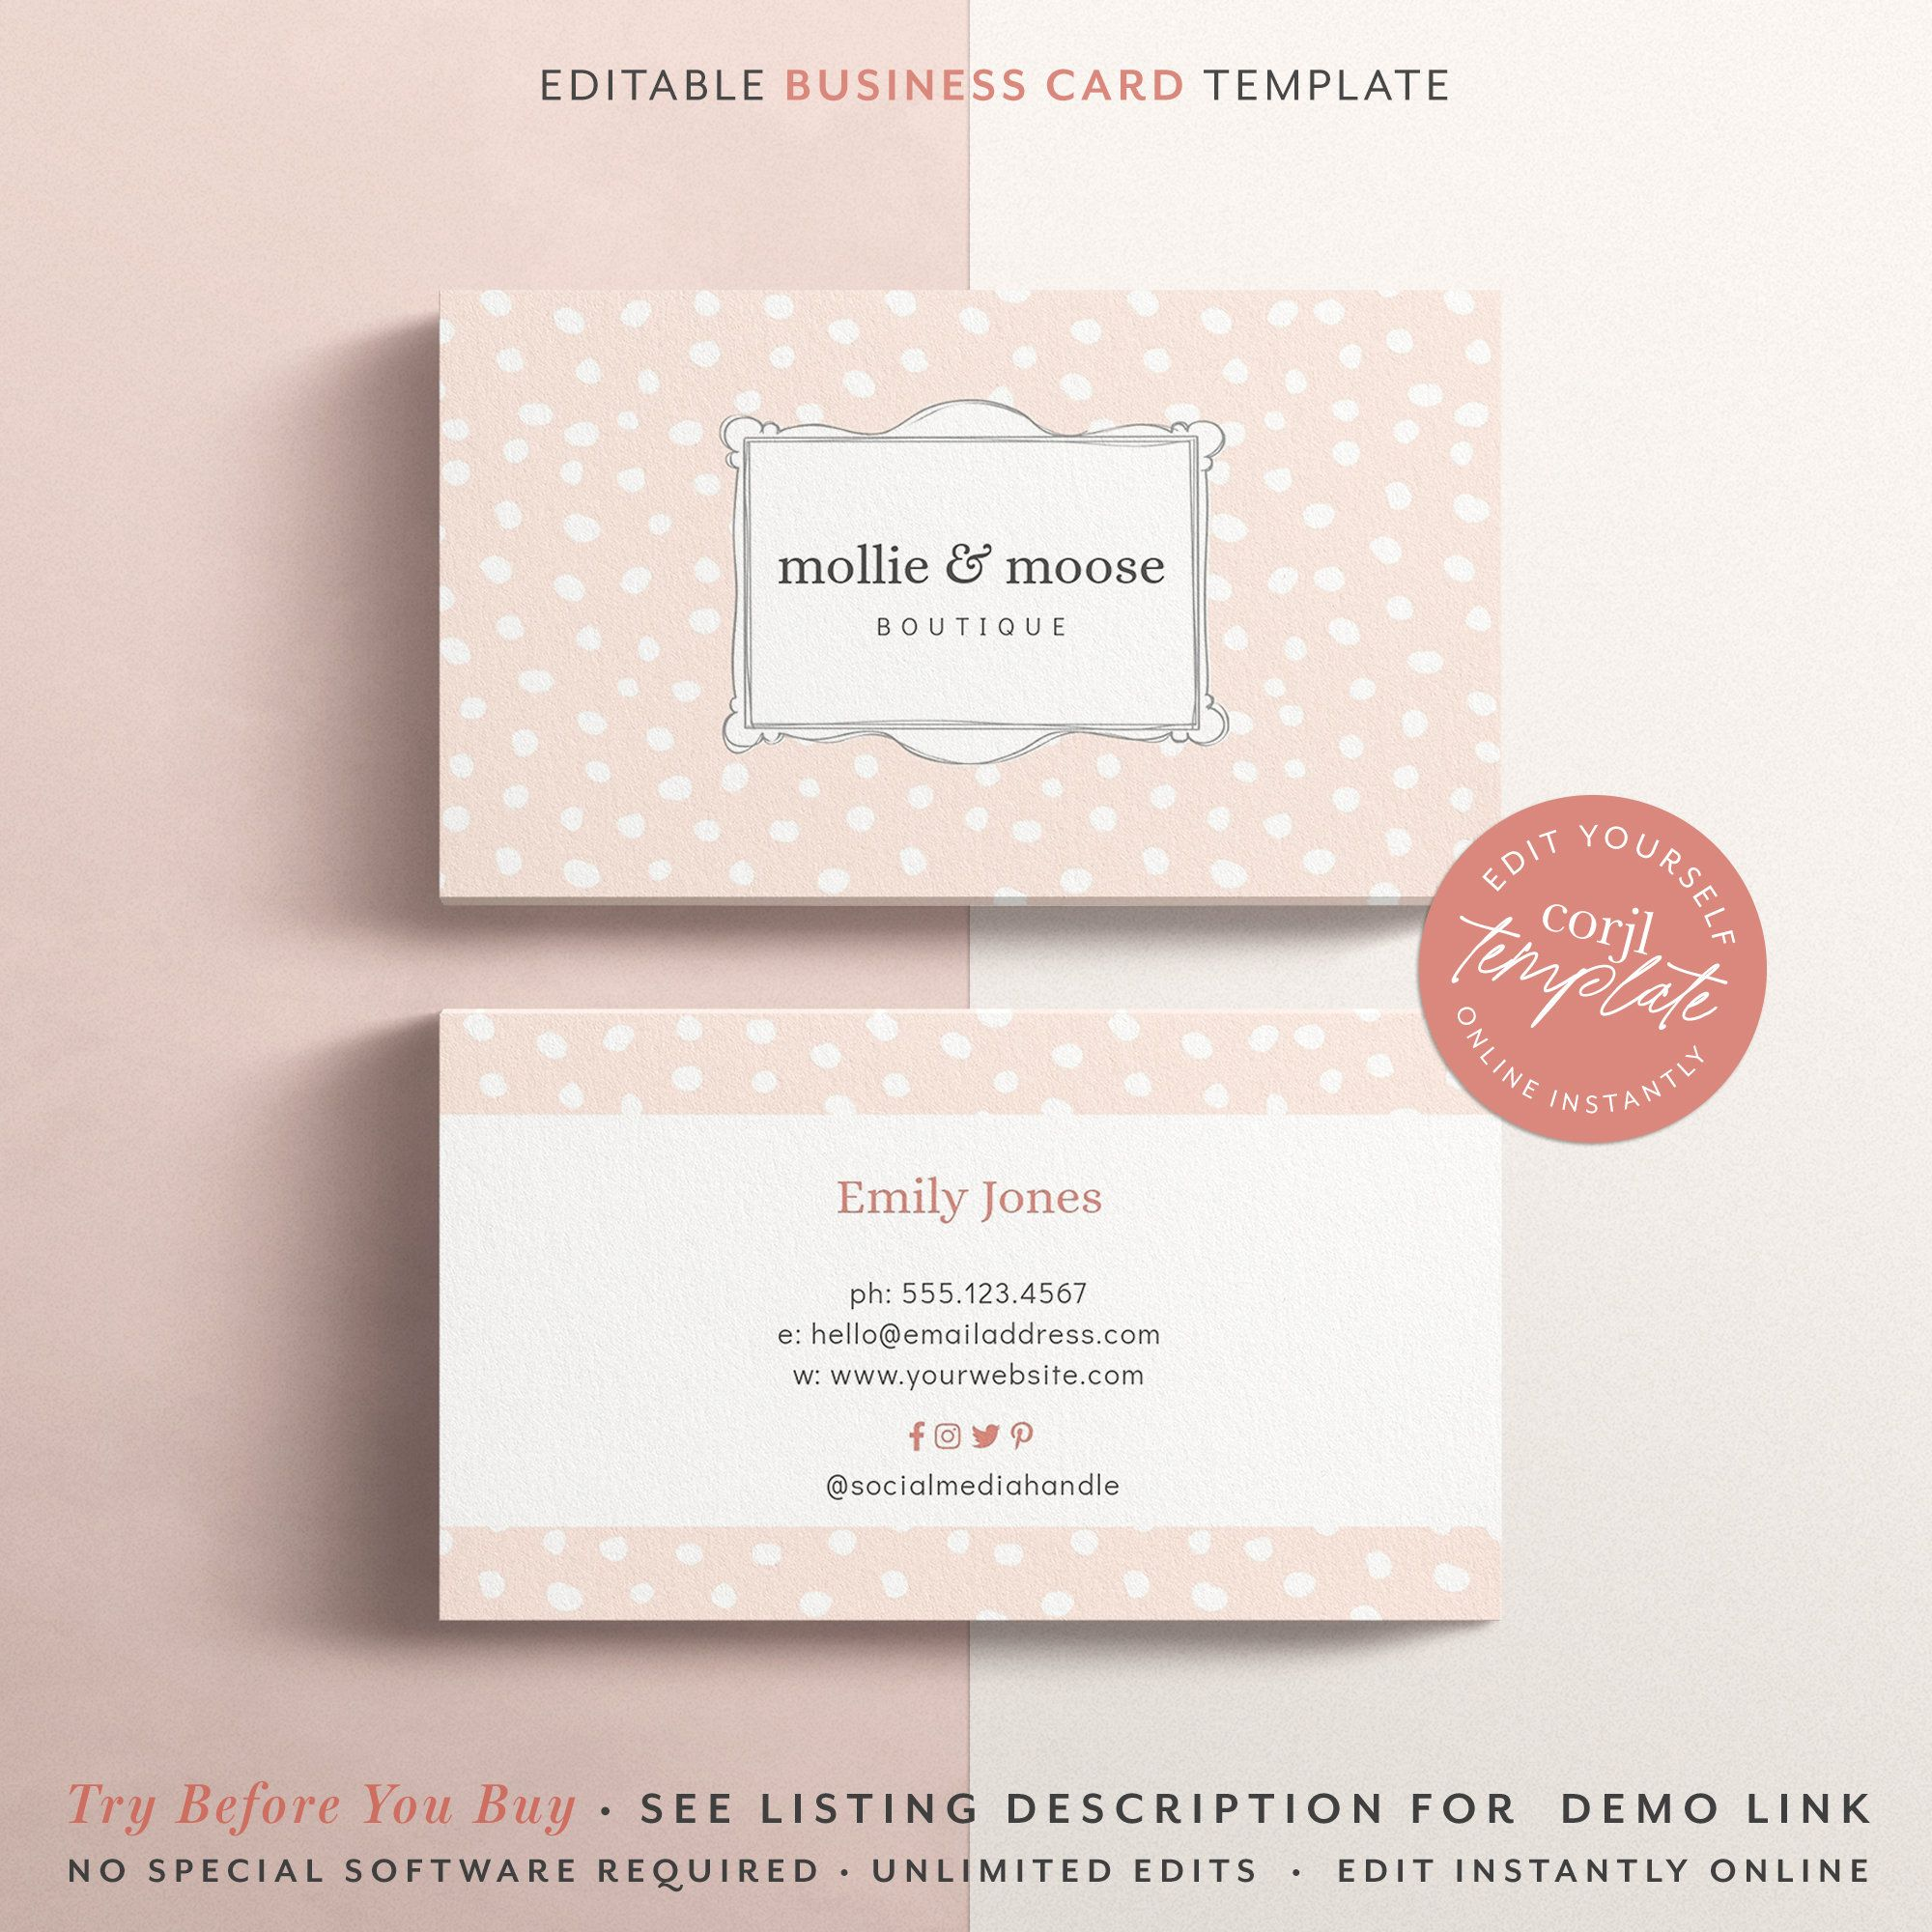 Photoshop Template Business Card Instant Download Printable Business Card Whimsical Frame Card Printable Business Cards Business Card Template Frame Card